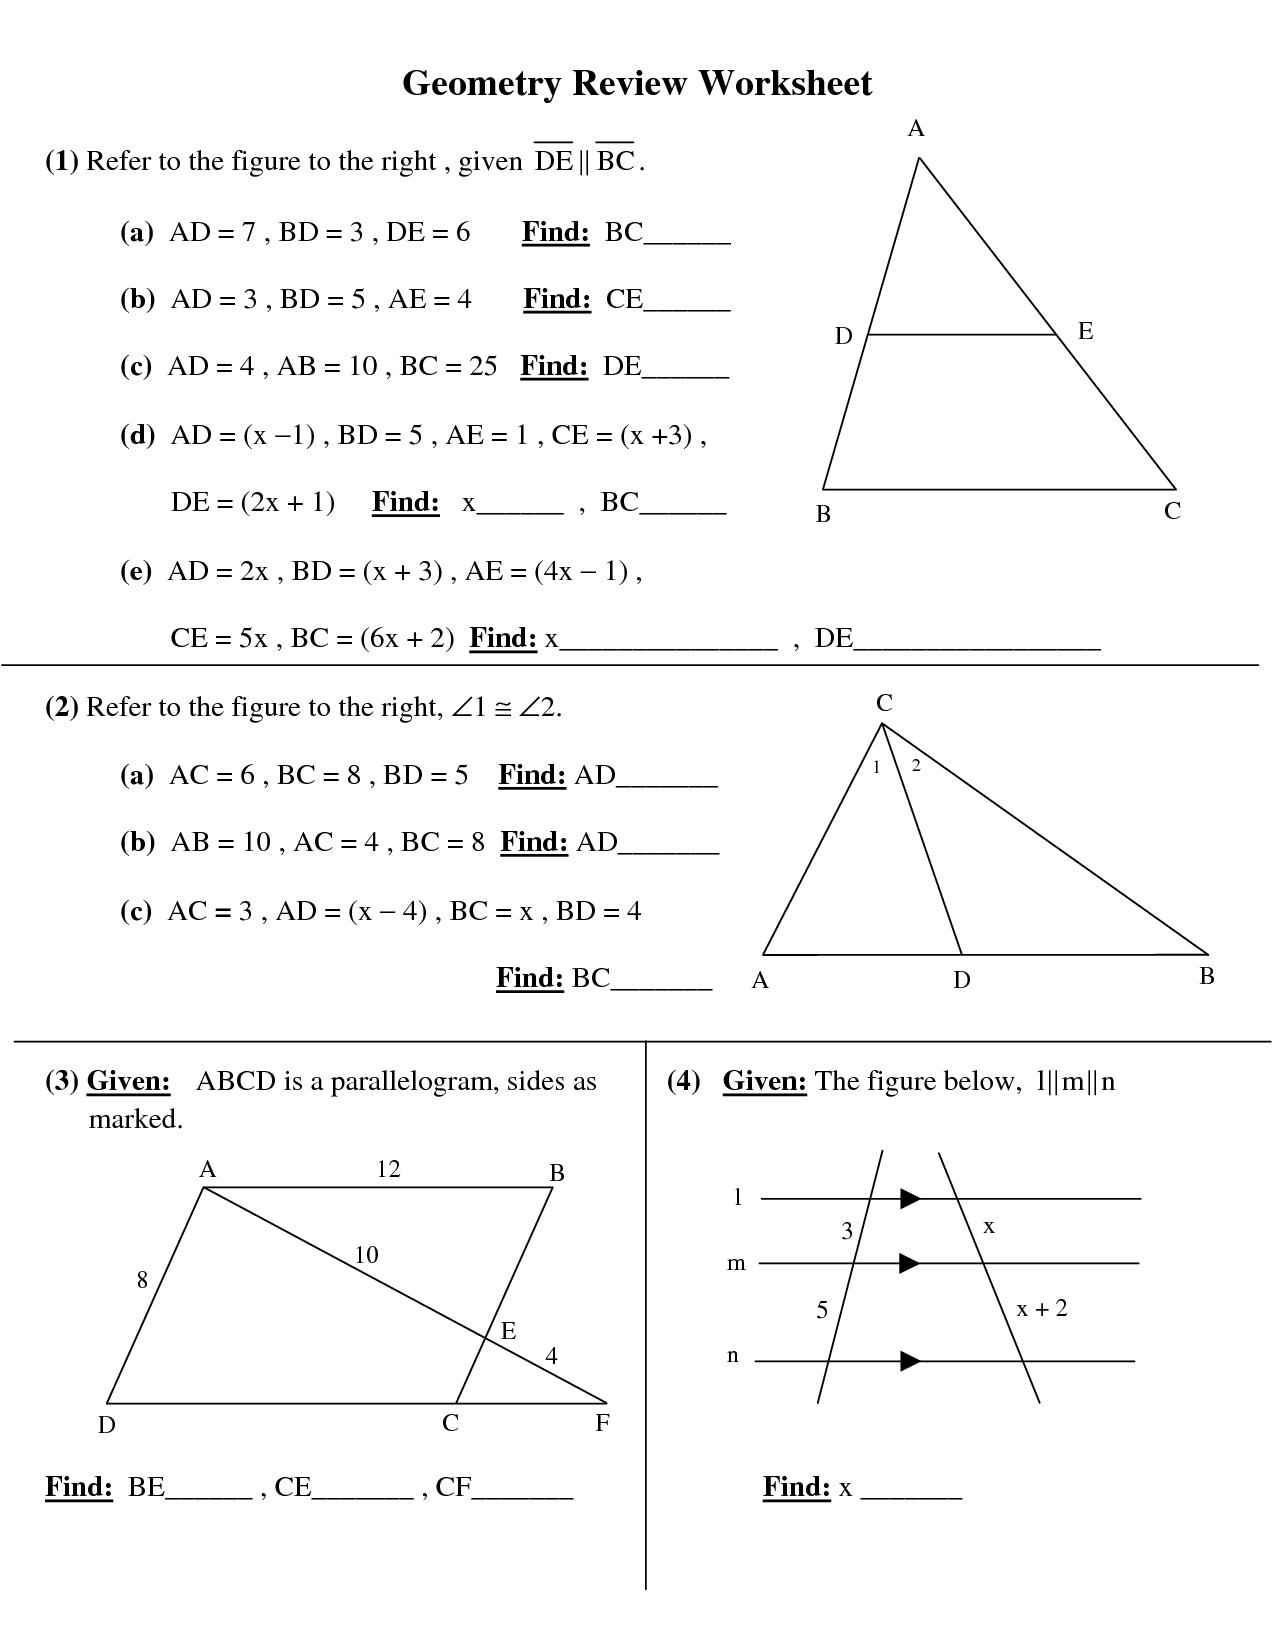 Common Core Worksheet Polygons